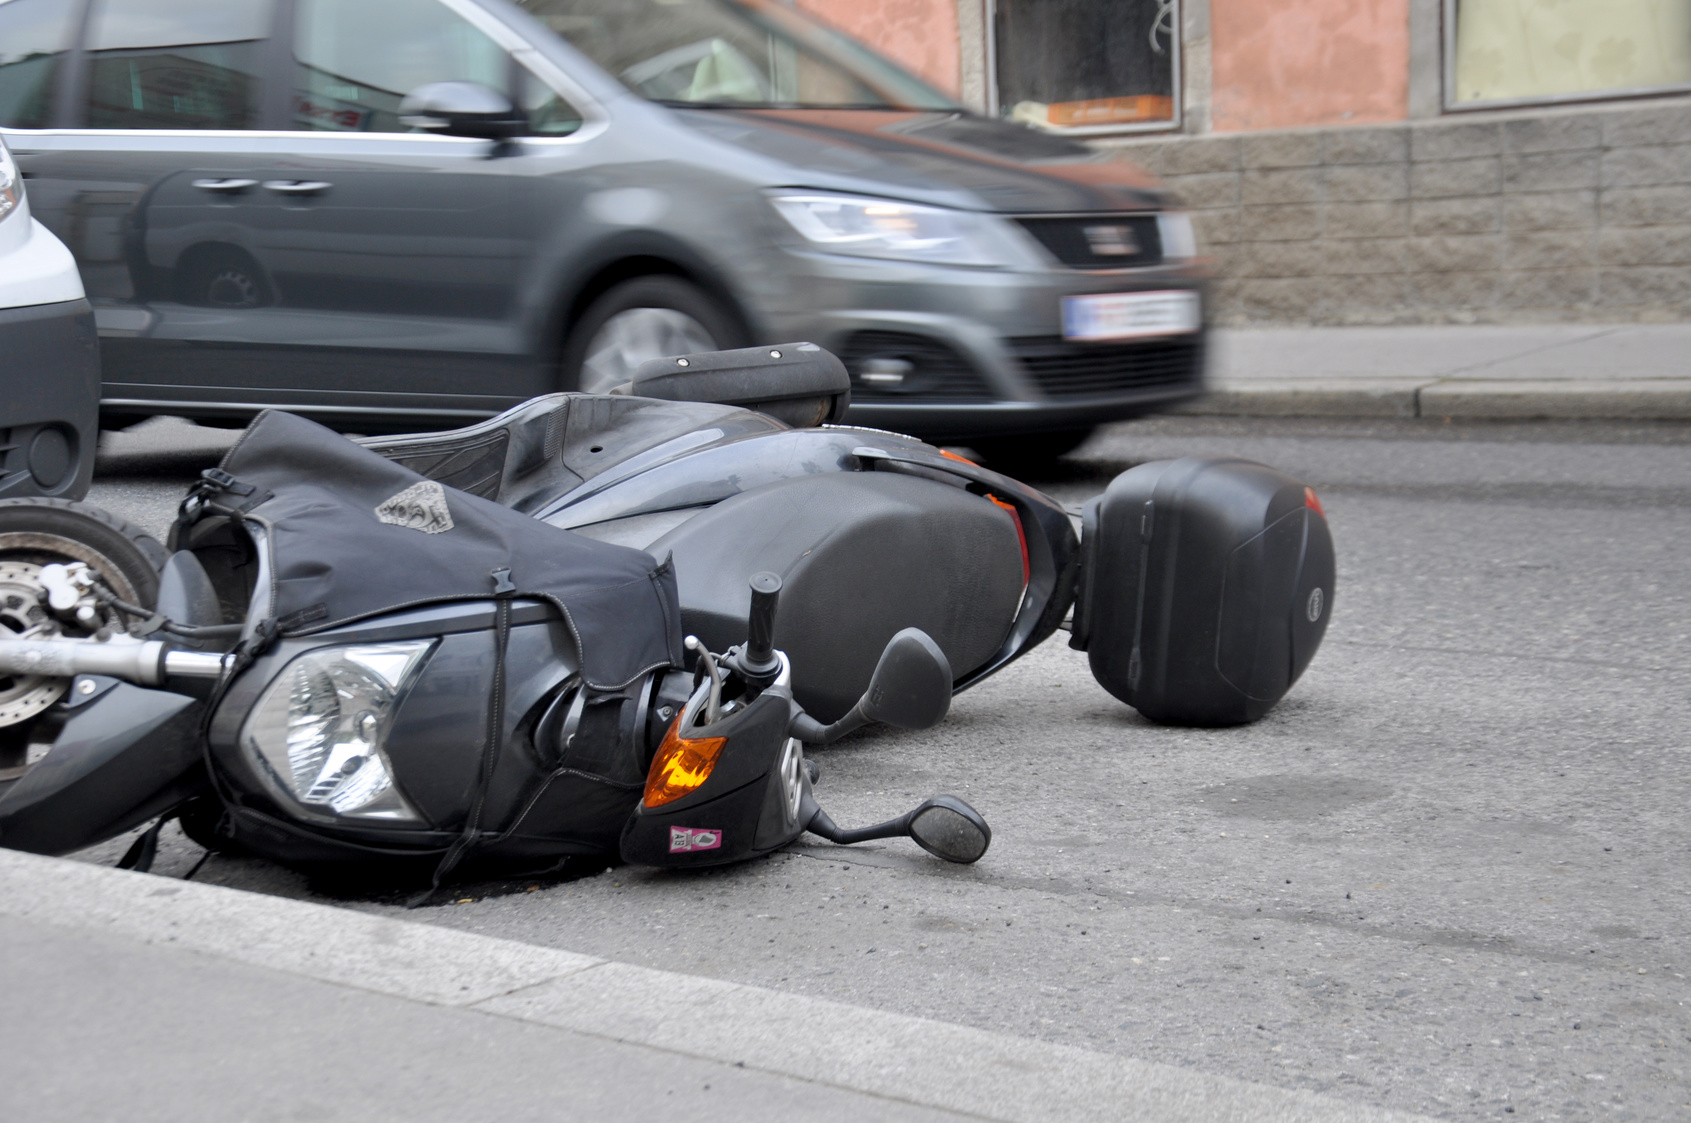 Mood swings after a motorcycle accident